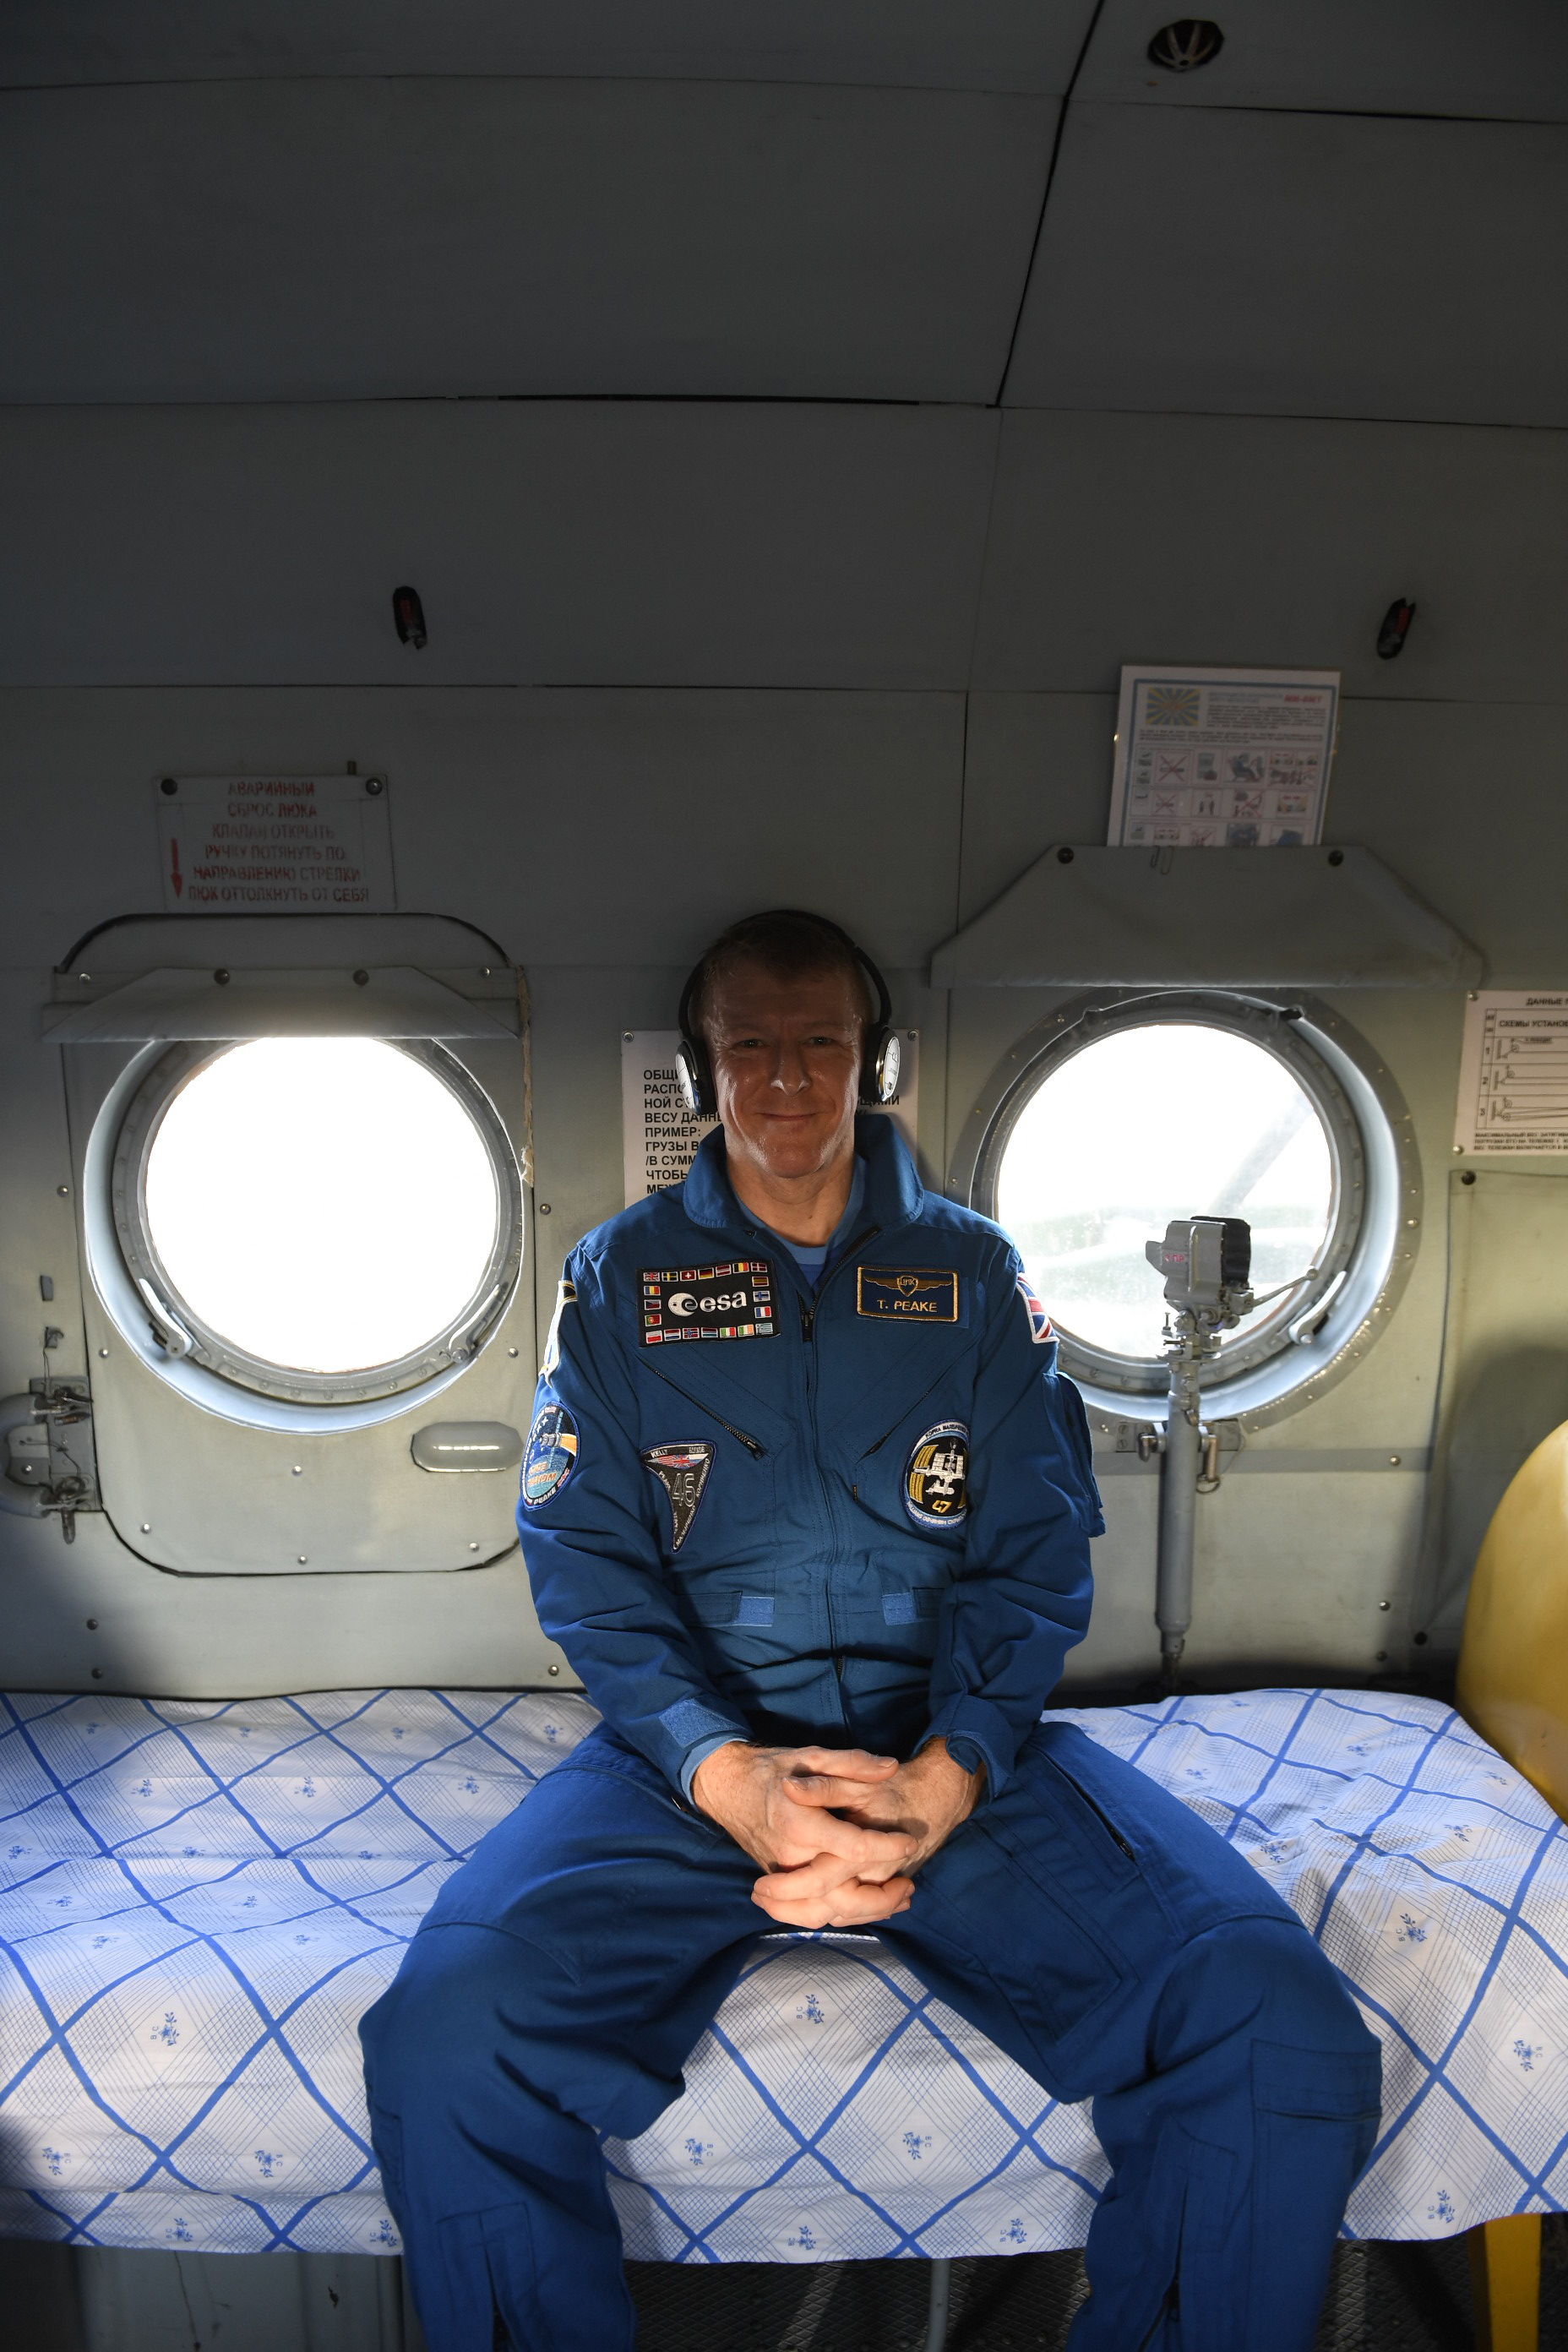 Tim_Peake_in_a_recovery_helicopter_shortly_after_landing16